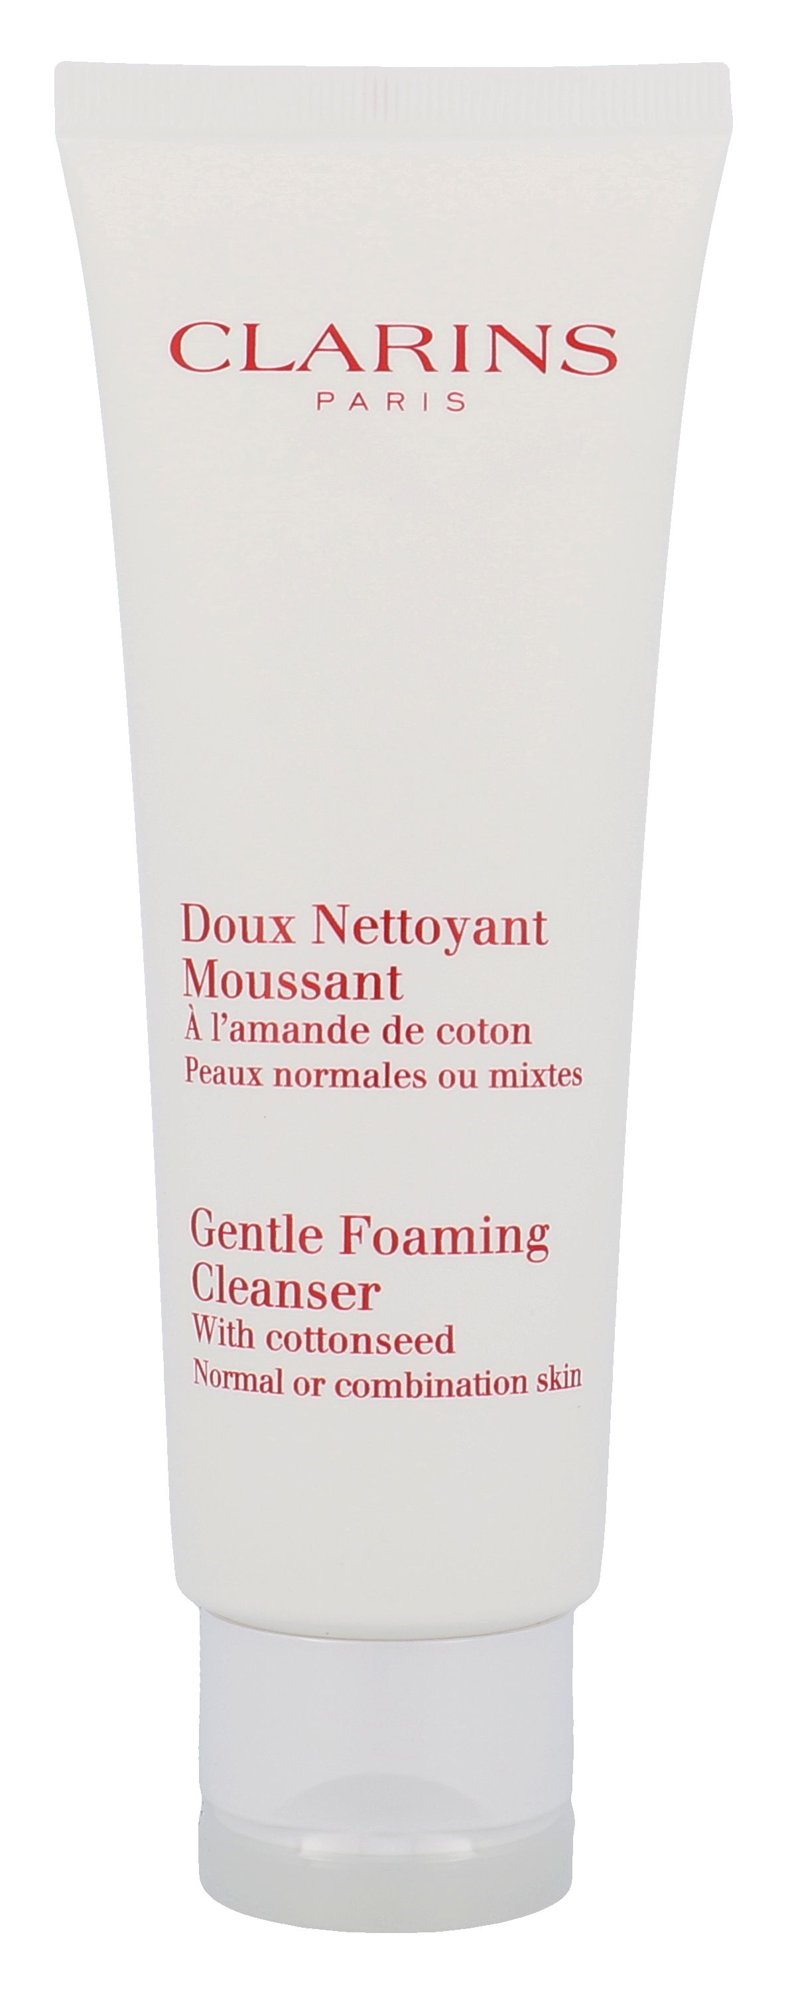 Clarins Cleansing Care Cosmetic 125ml  Gentle Foaming Cleanser